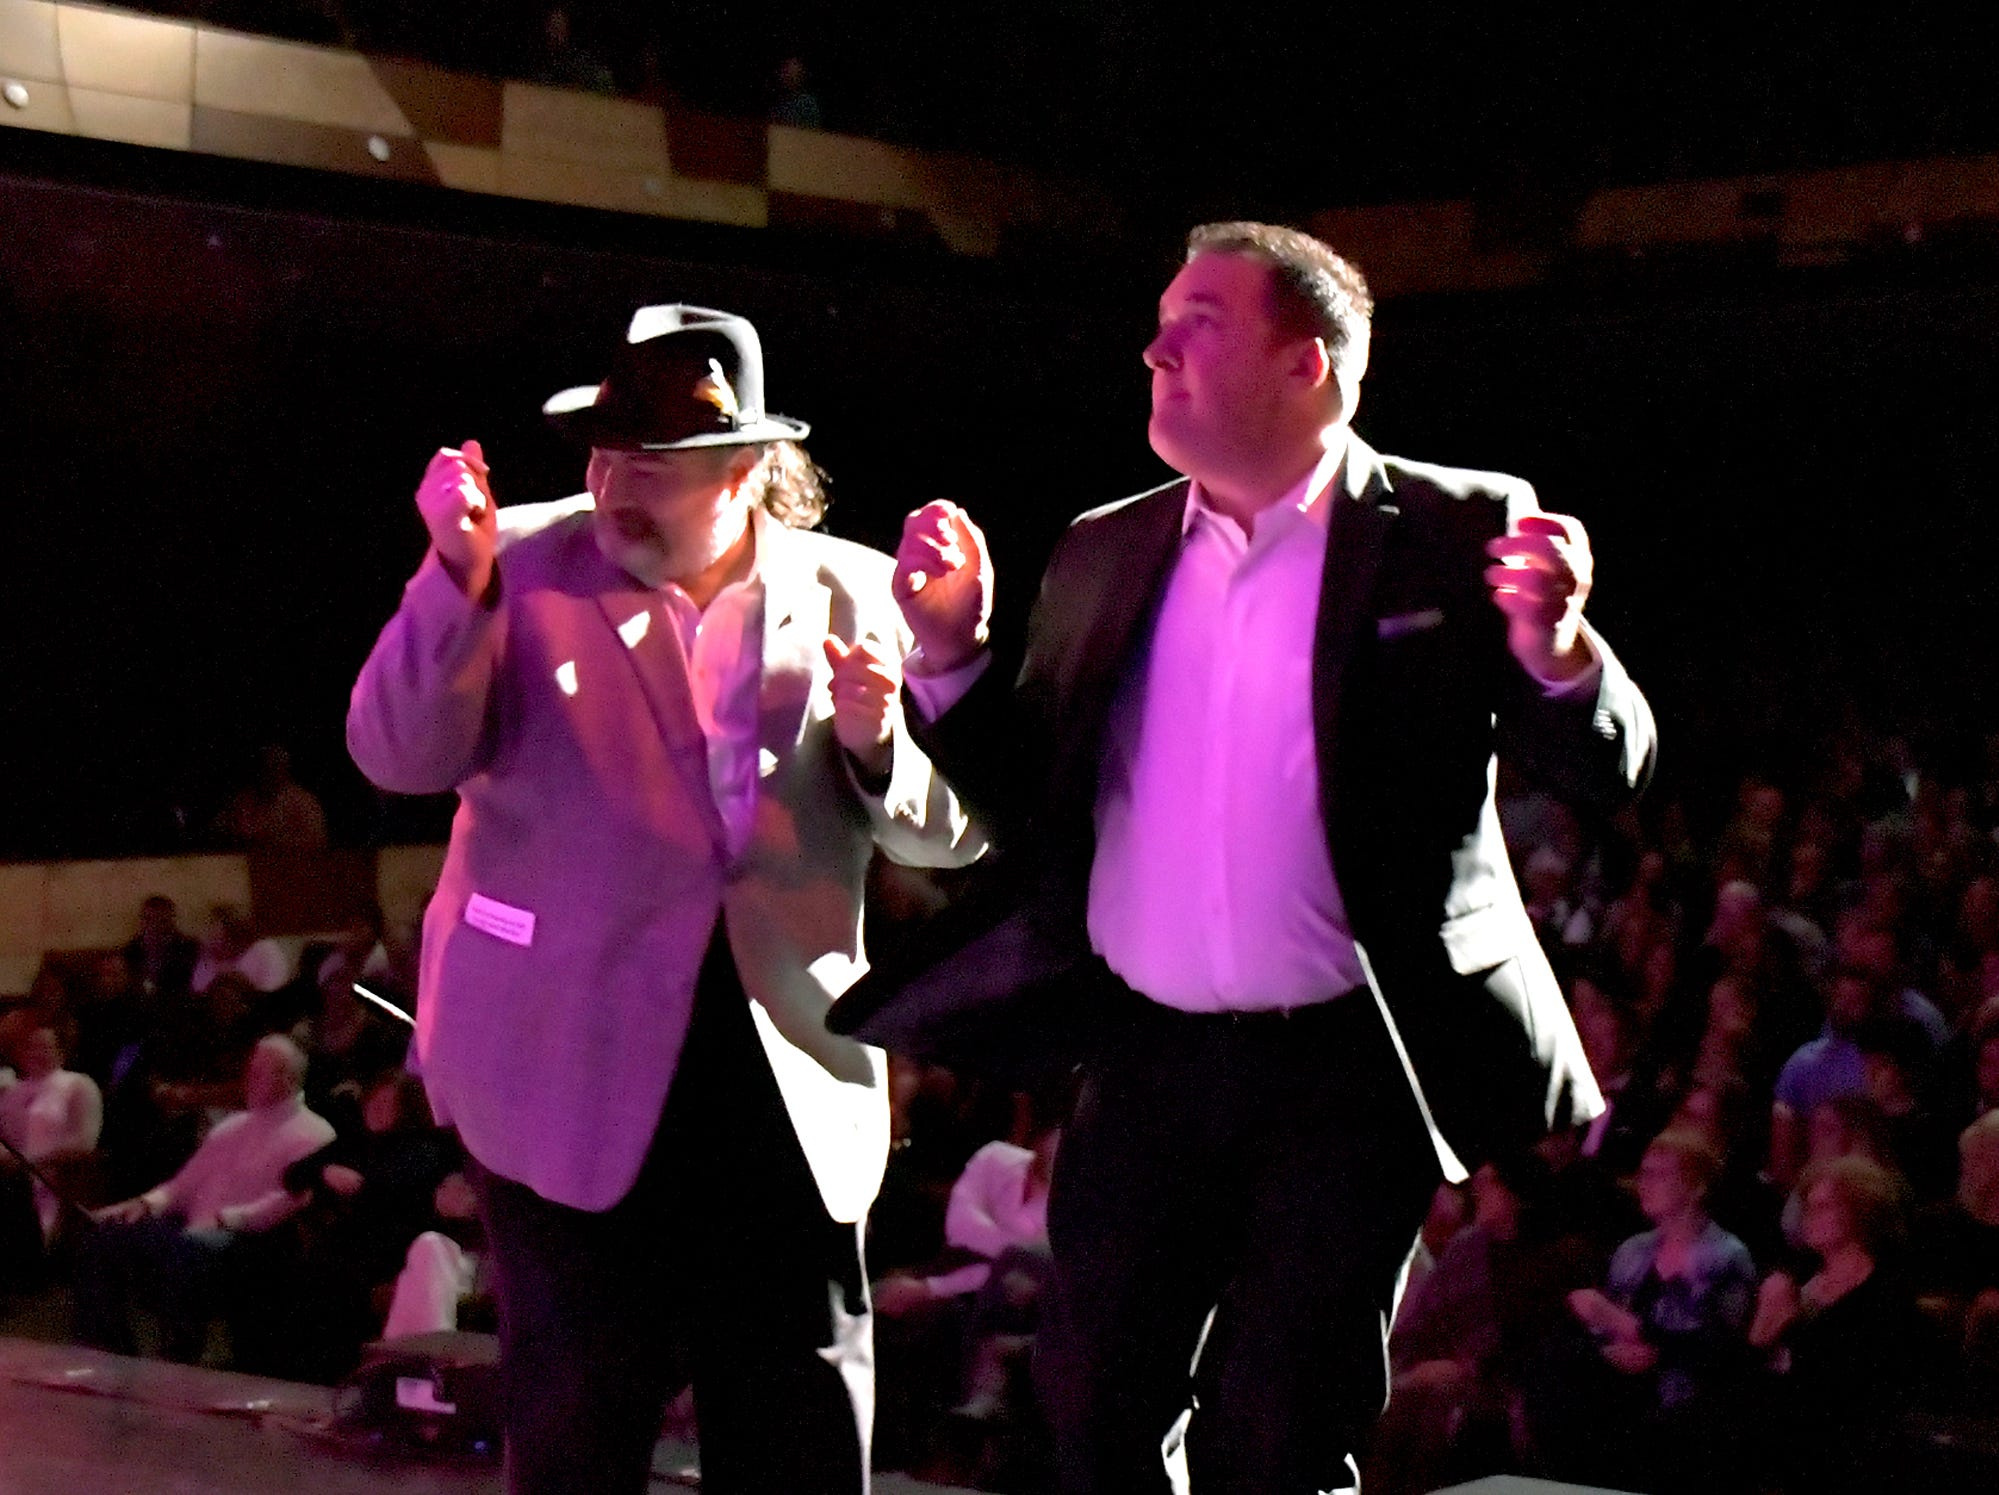 Doug Knight, left, dances on stage with Adam McCallister during a recent Peter Bottros concert at The Pullo Center. Knight died Friday, Jan. 4, 2019.